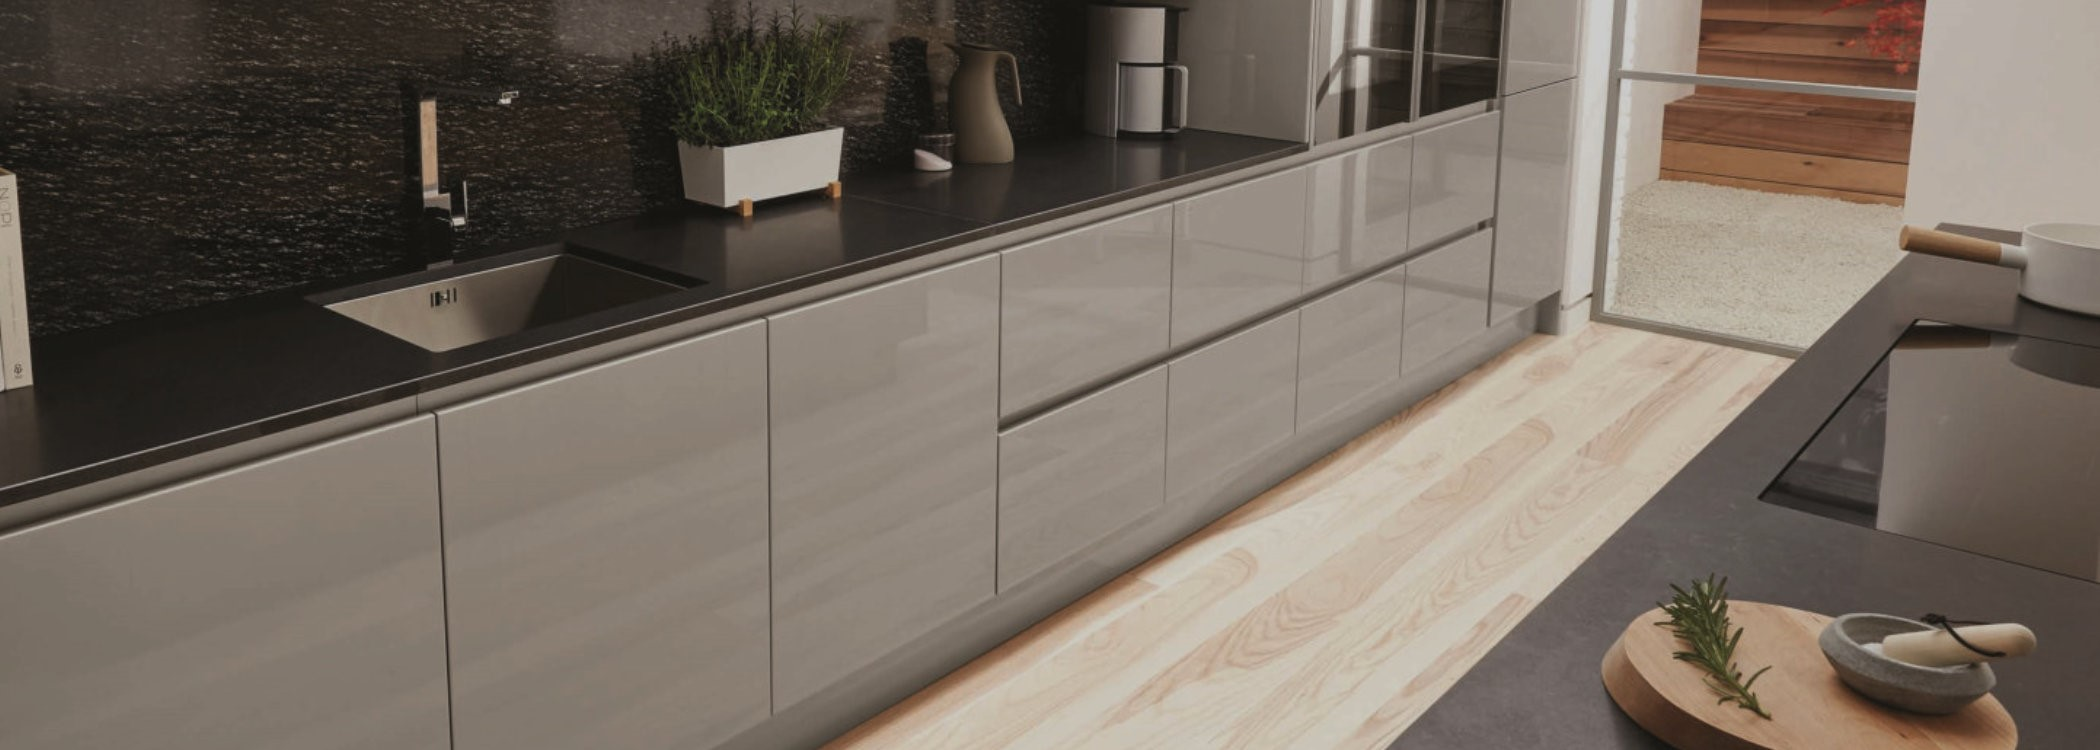 Quantum Aluma Bellever Kitchens